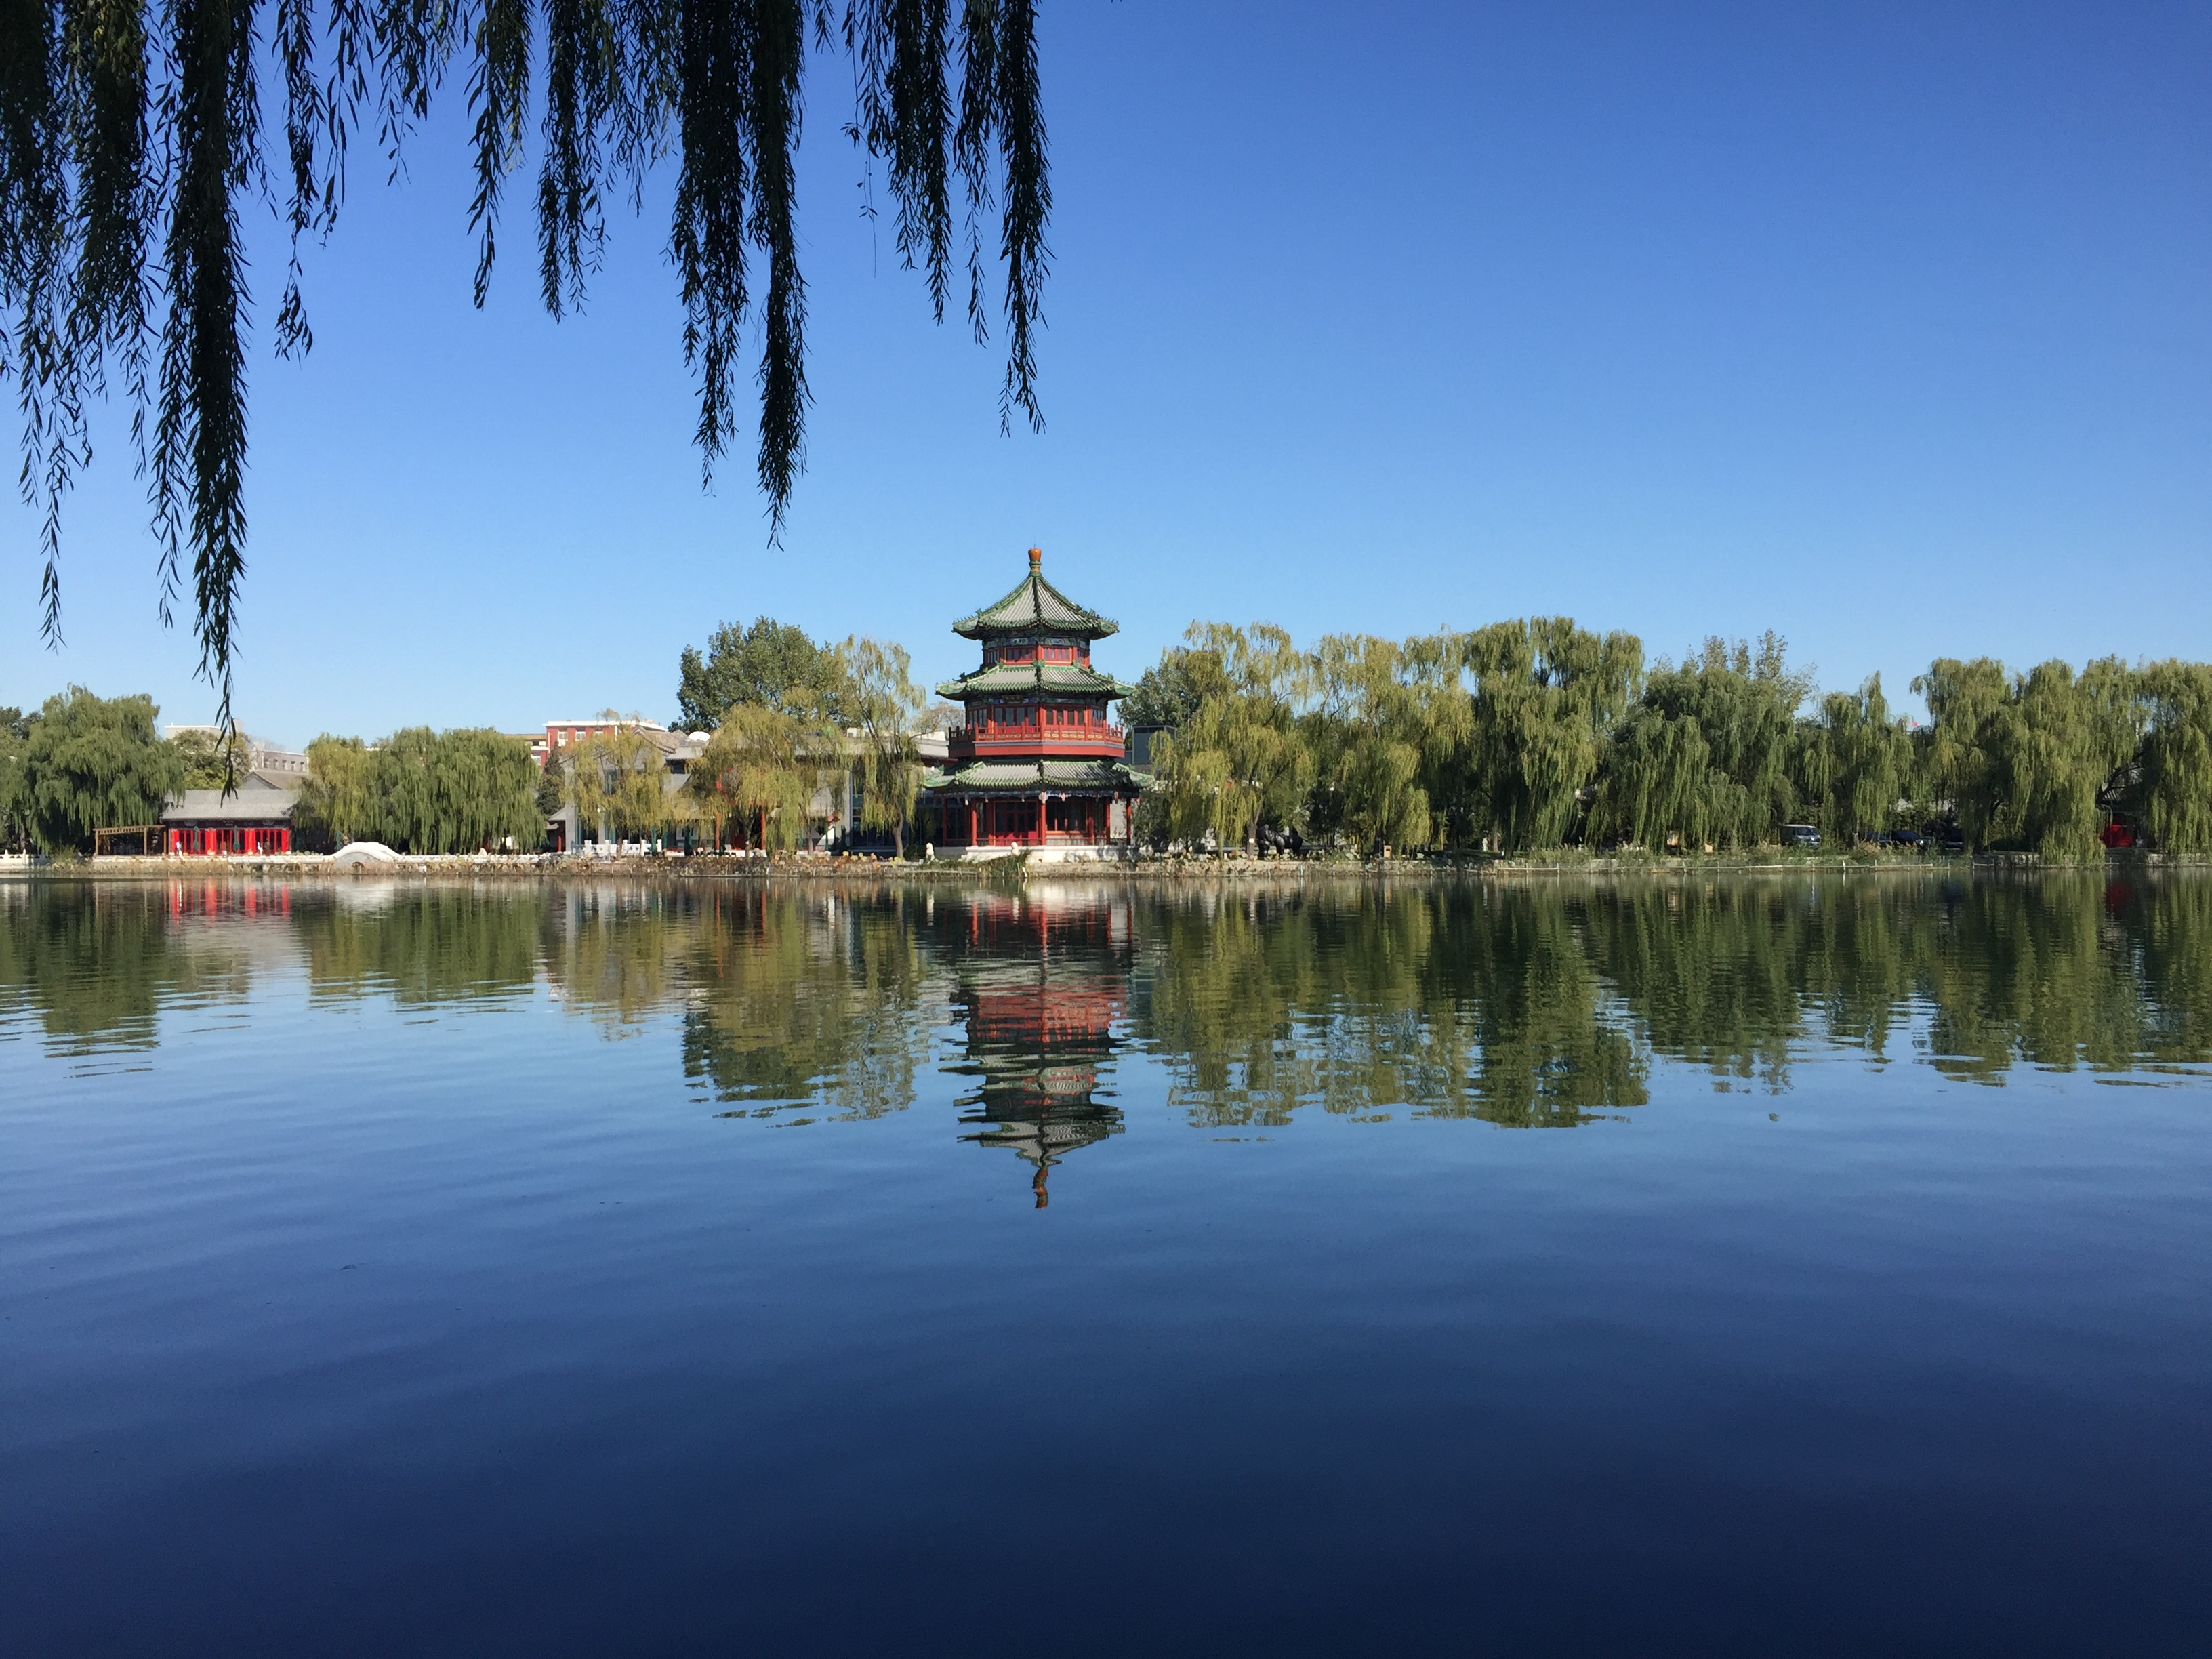 Xihai Lake on a remarkably clear day. Not a bad place for a run!